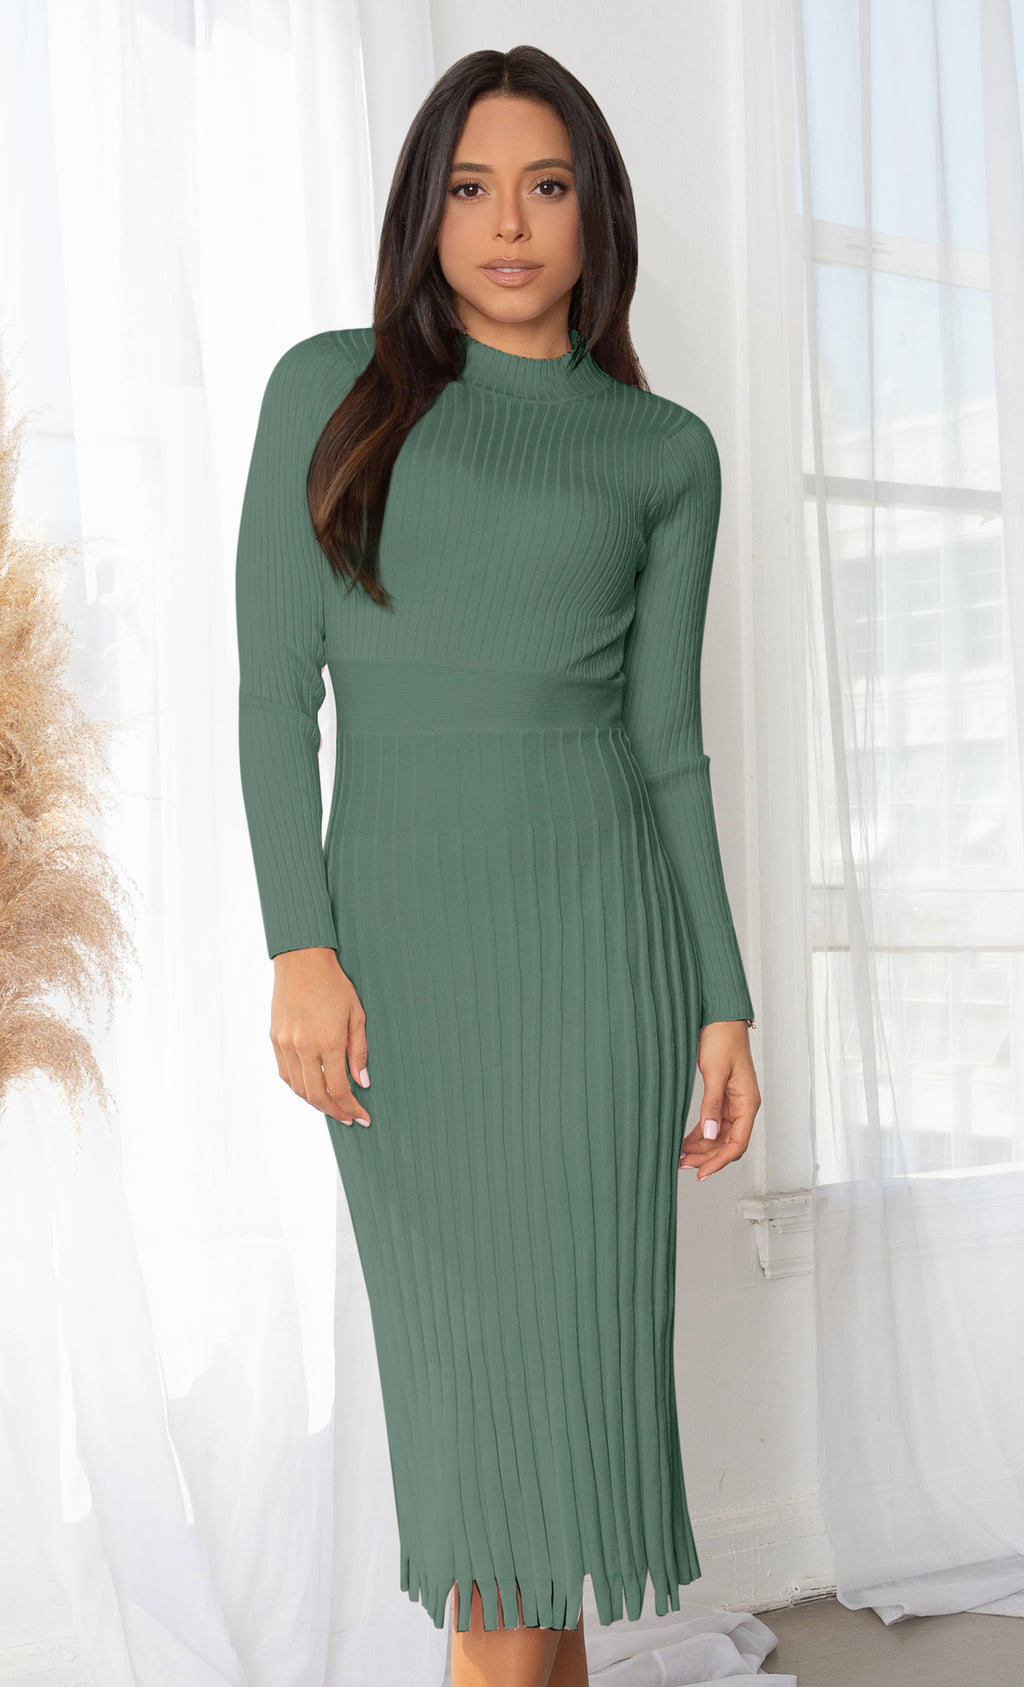 All You Want Green Pleated Crew Ribbed Round Neck Modest Long Sleeve Stretch Knit Body Con Sweater Midi Dress